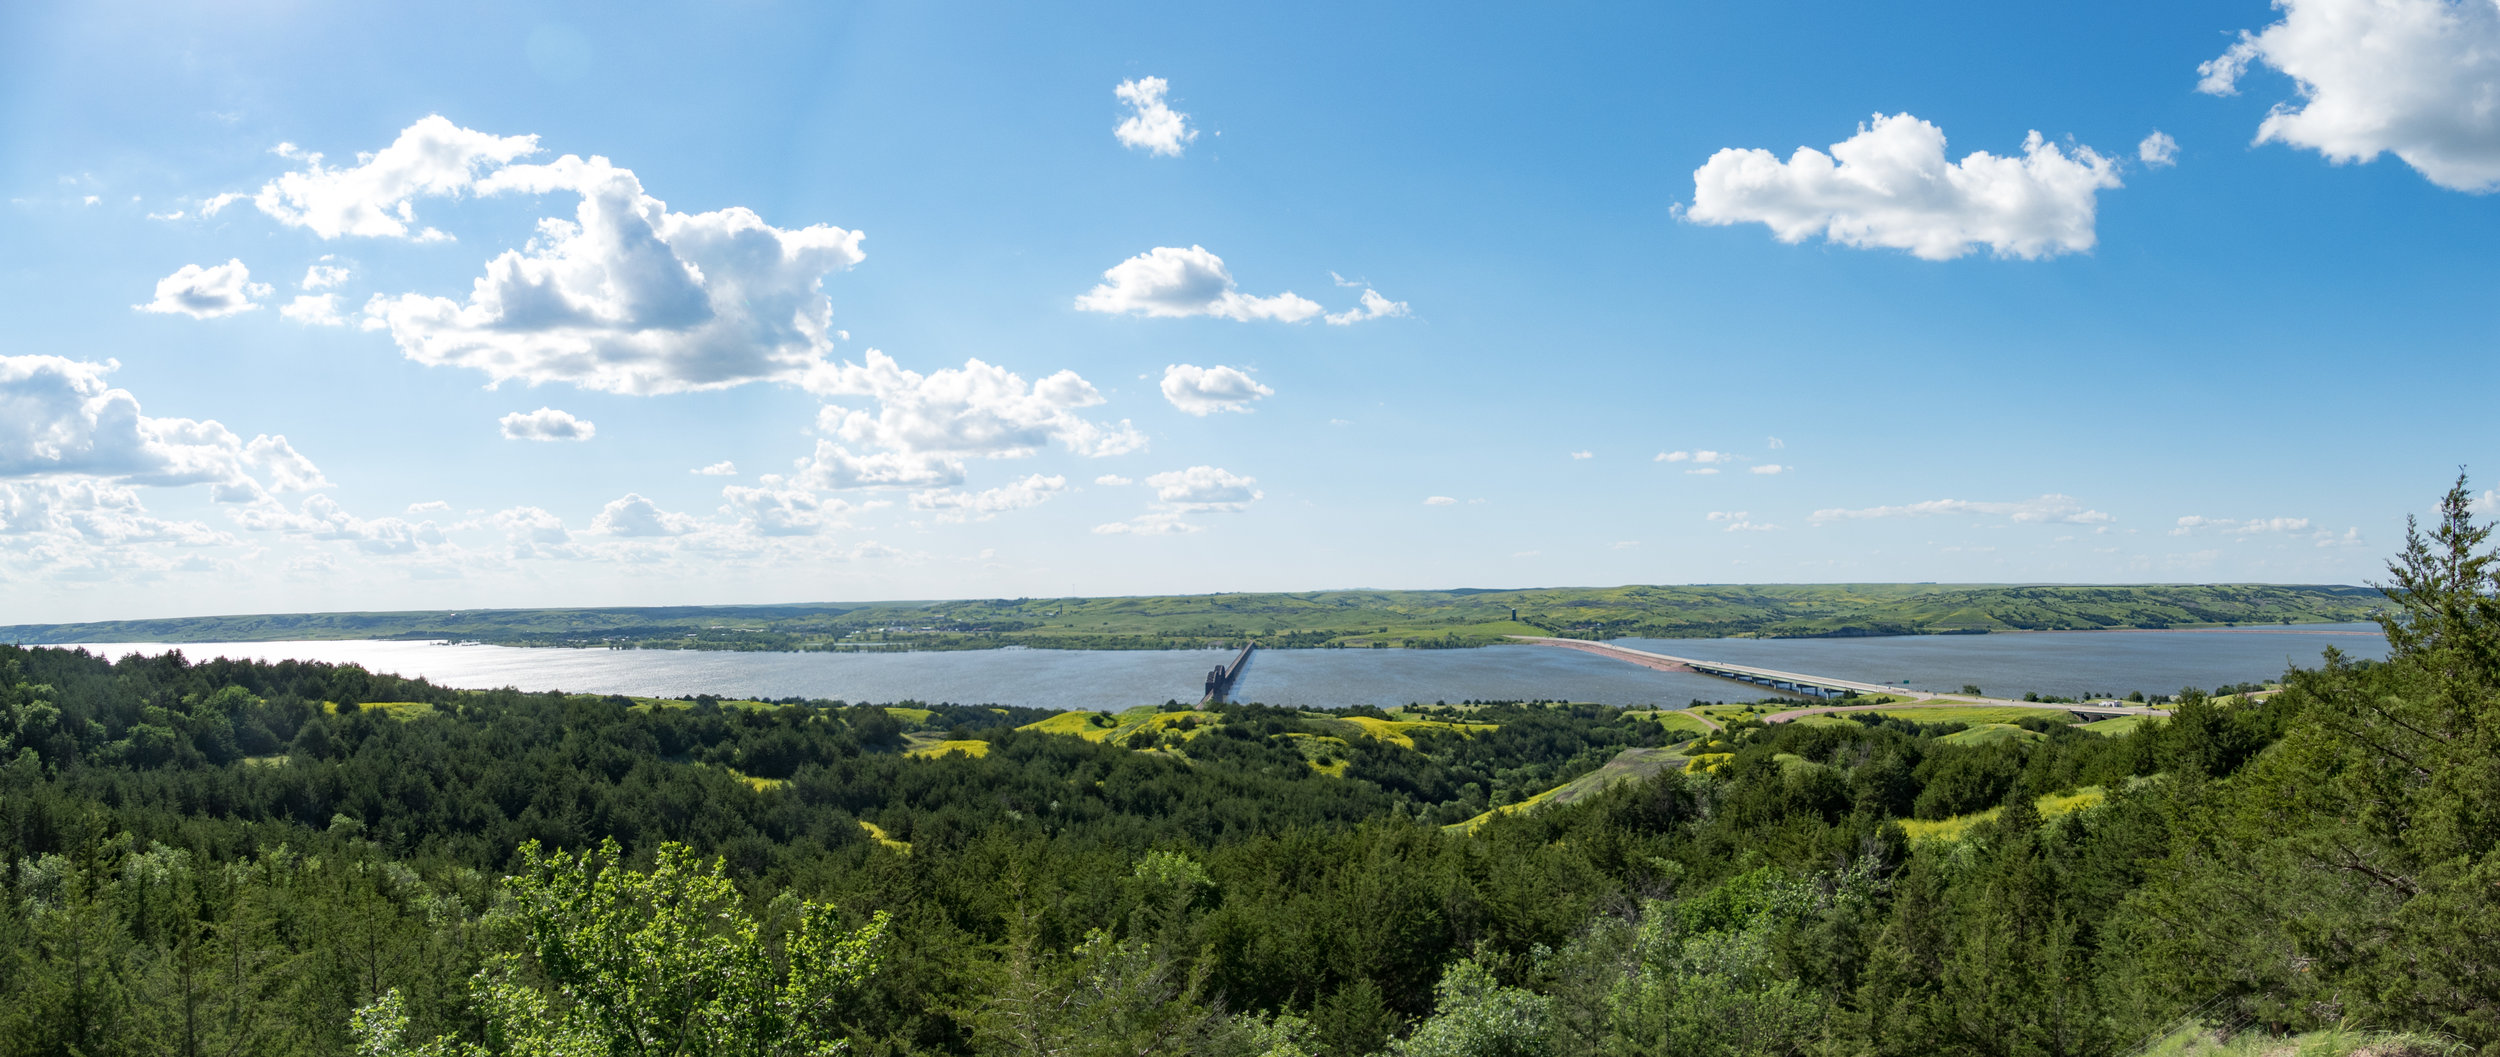 Panoramic overlook of the Missouri River at Chamberlain, SD